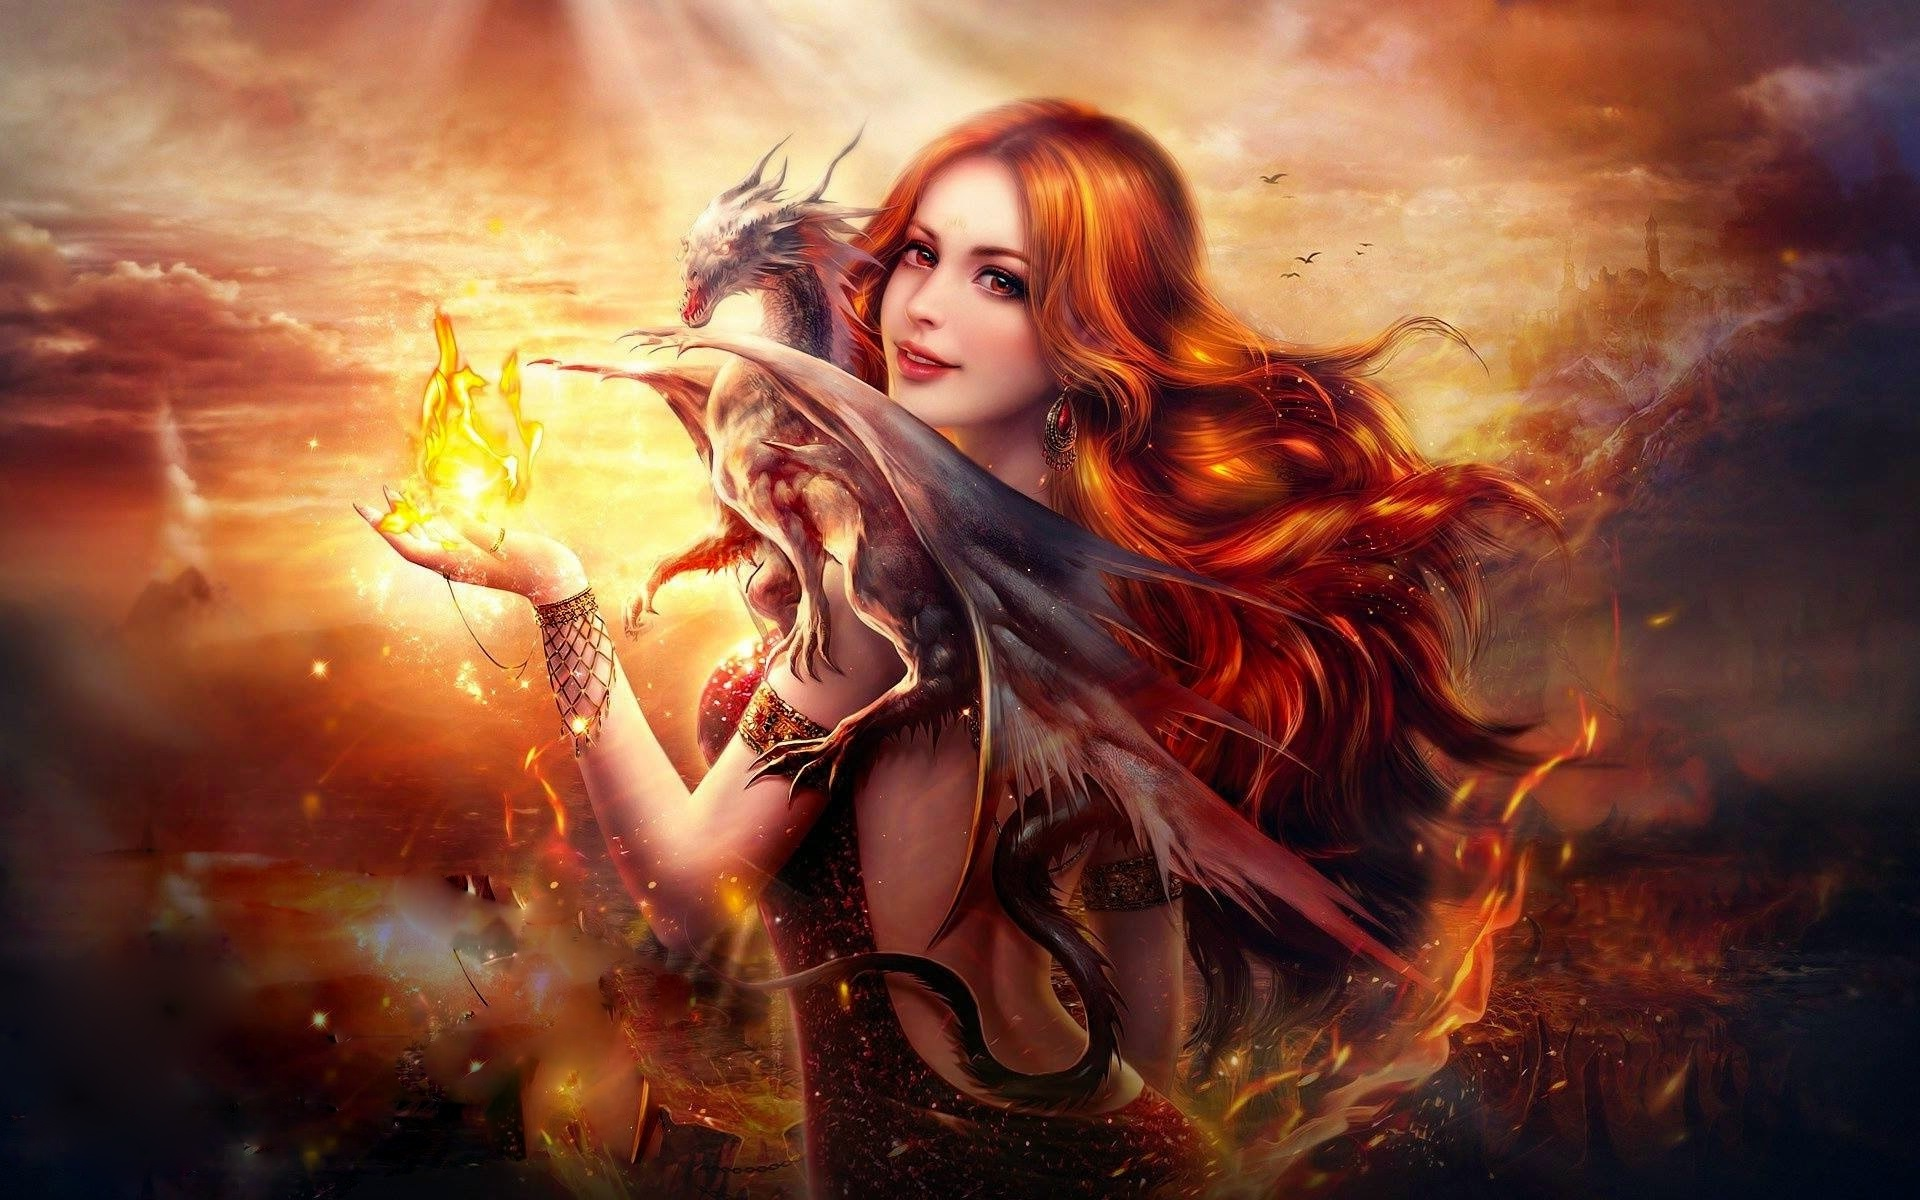 beautiful-fantasy-girl-red-haired-smile-dragon-fire_1920x1200.jpg